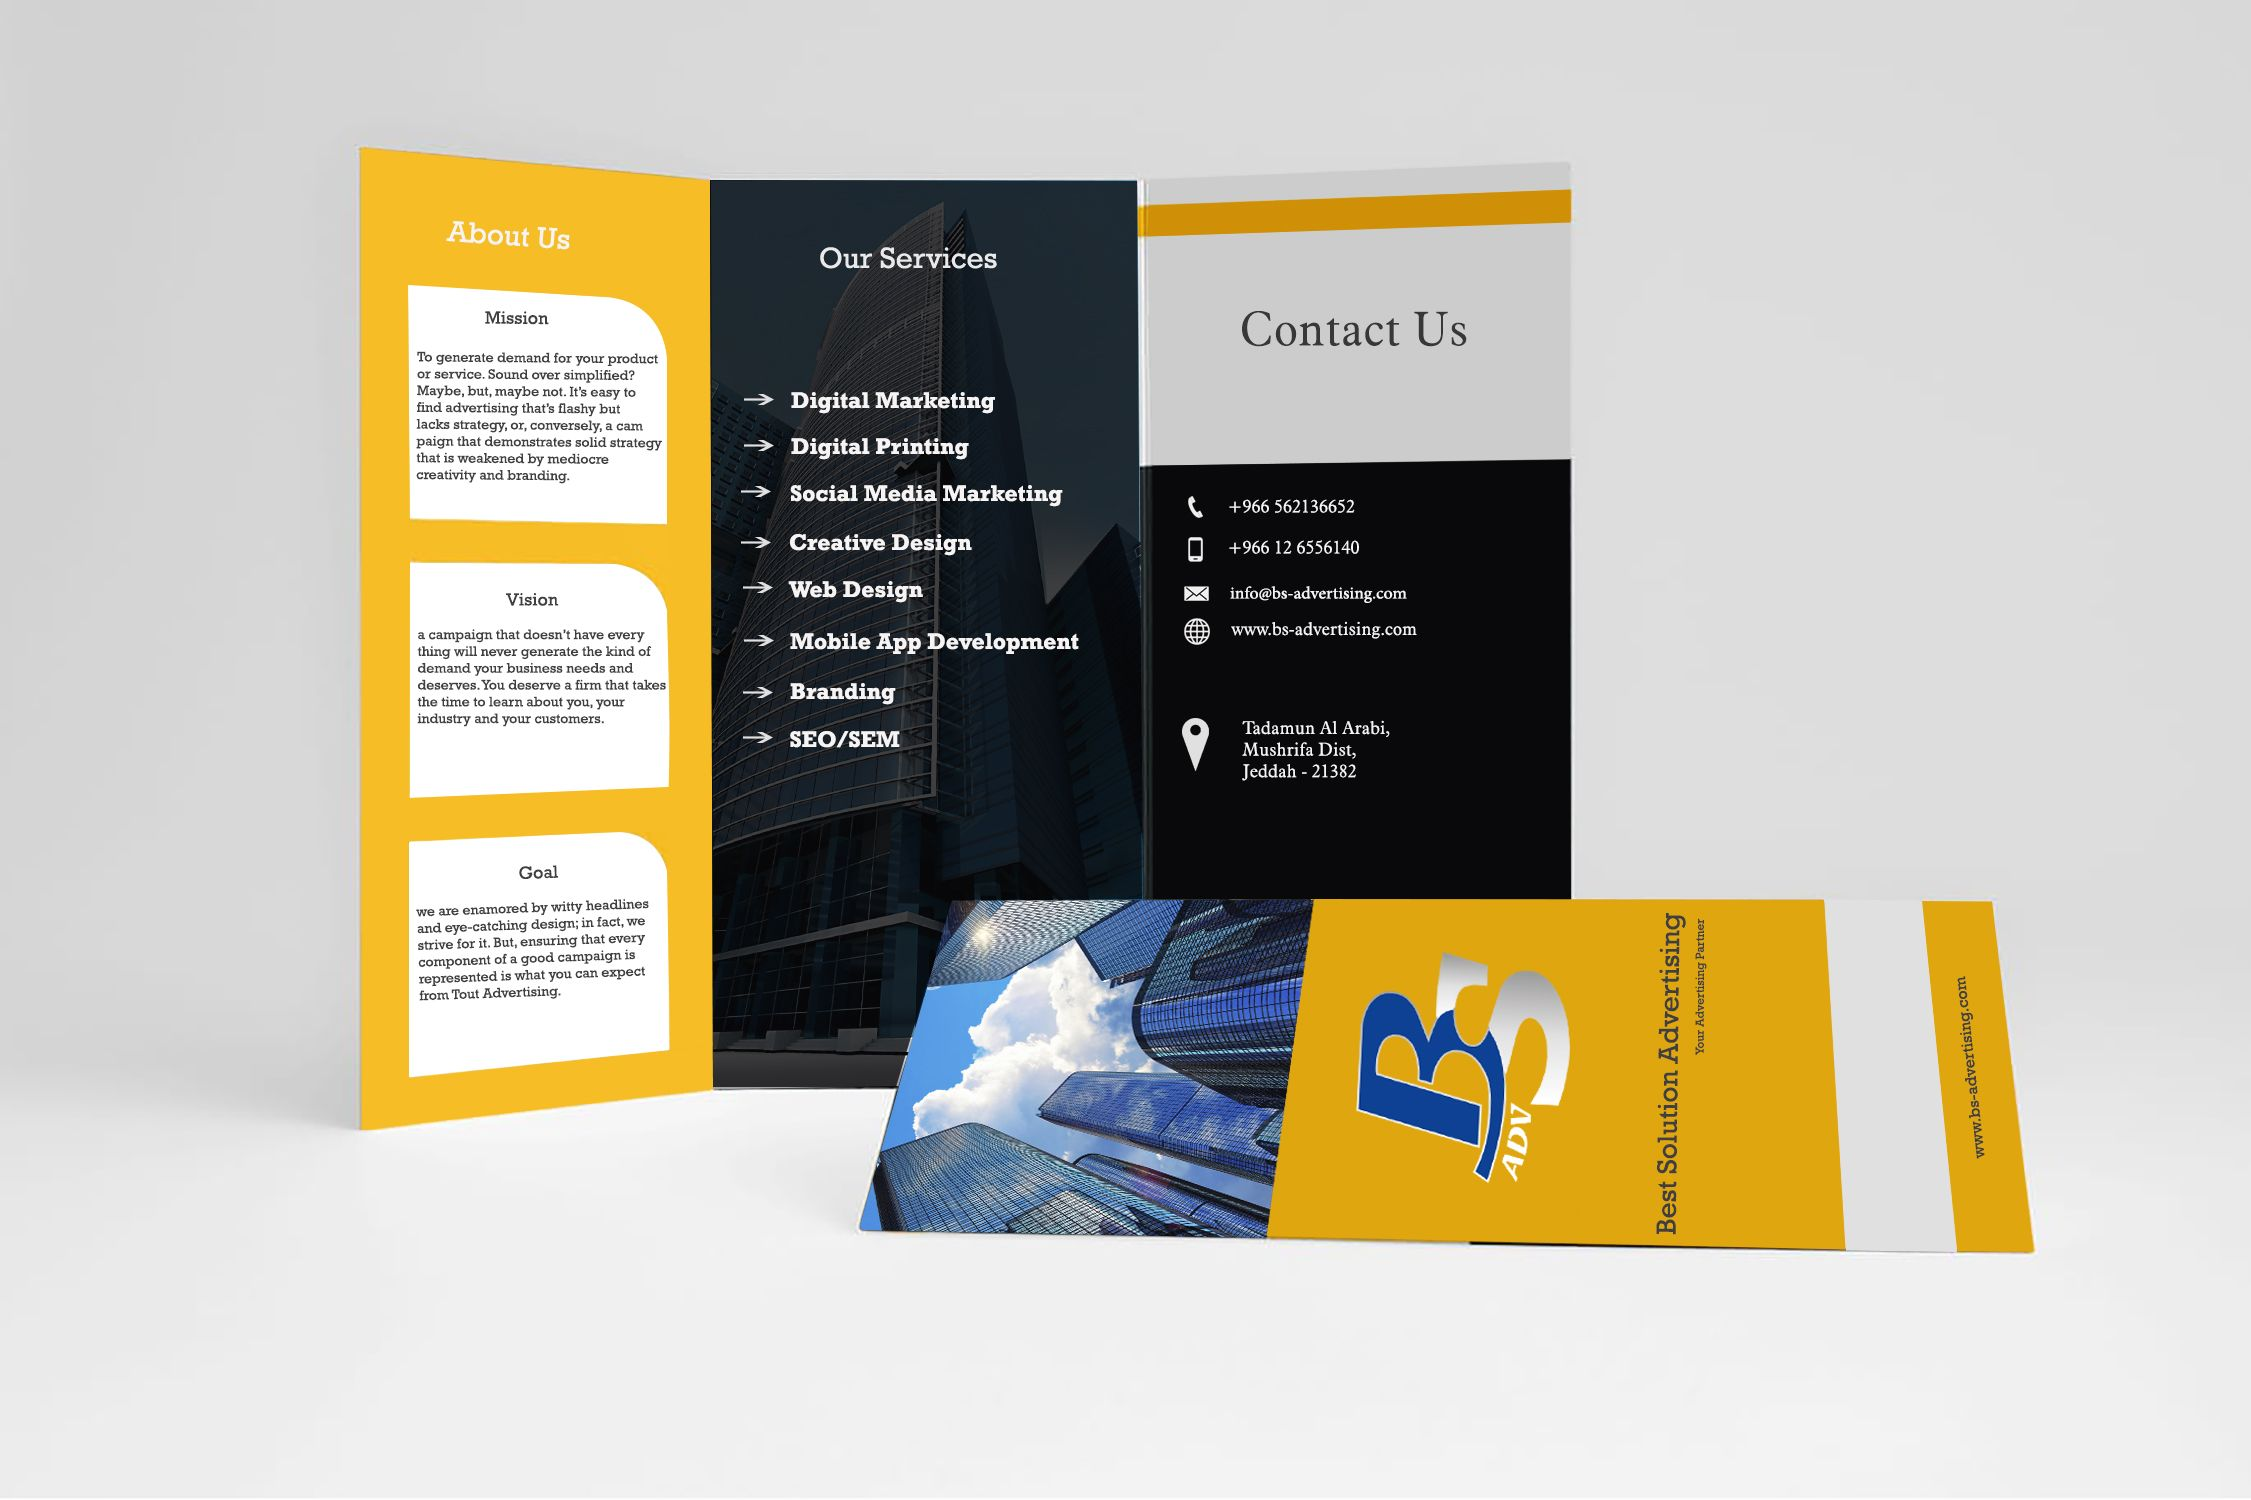 Graphic Design Services In Jeddah Advertising Services Graphic Design Services Advertising Agency